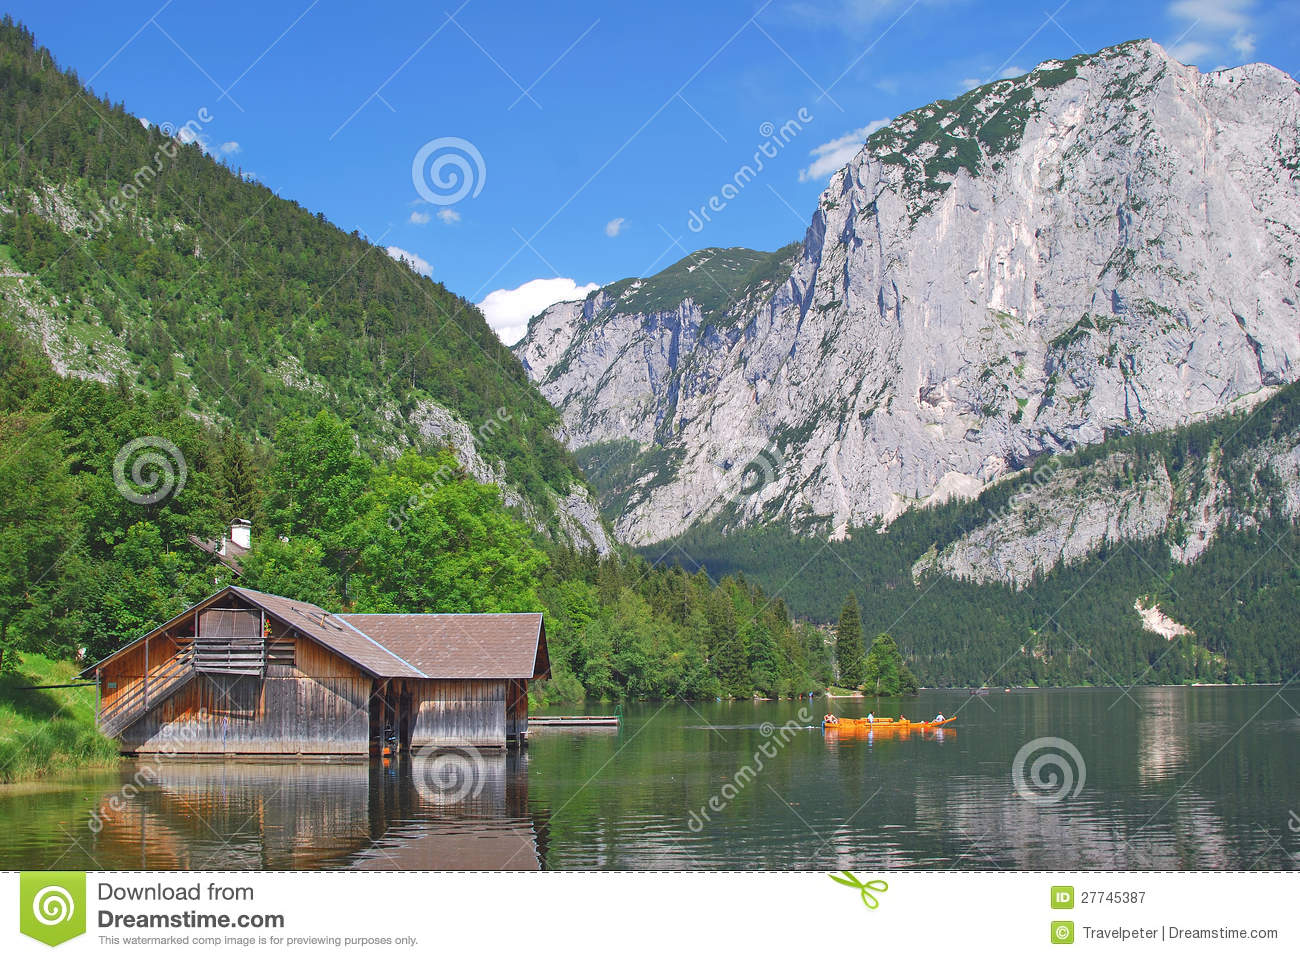 Lake Altaussee,Styria,Austria Royalty Free Stock Photography - Image: 27745387